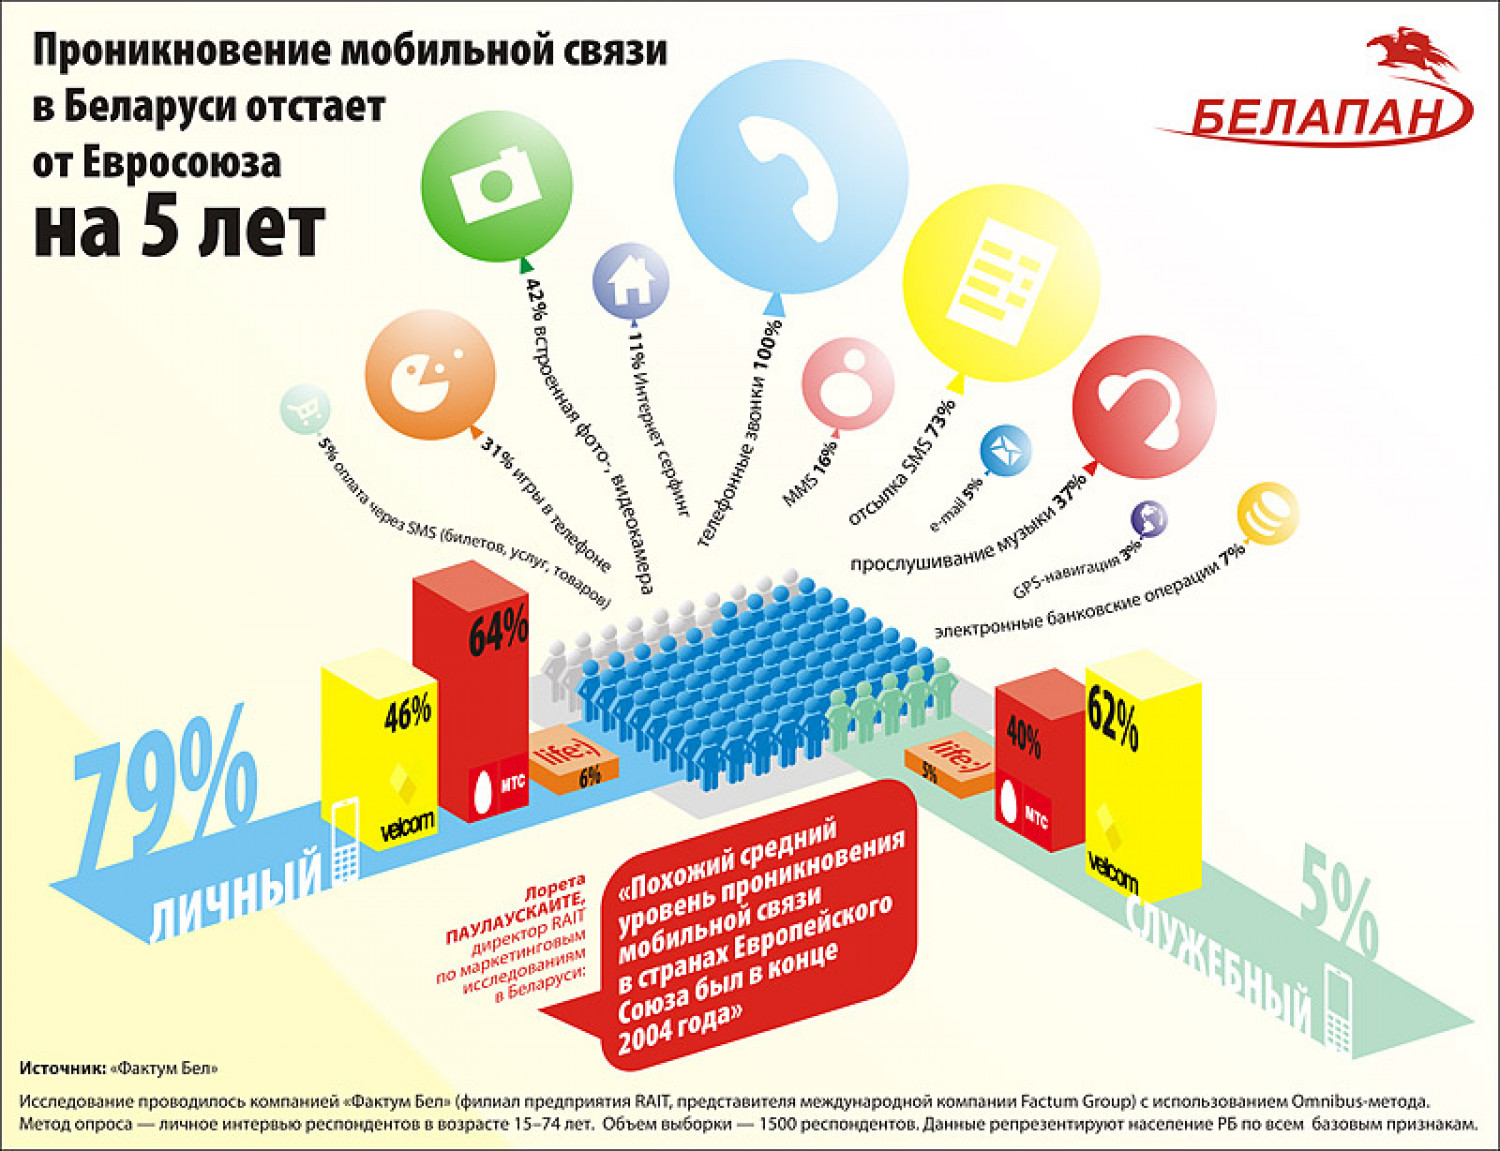 Mobile penetration in Belarus lags behind the EU for 5 years Infographic